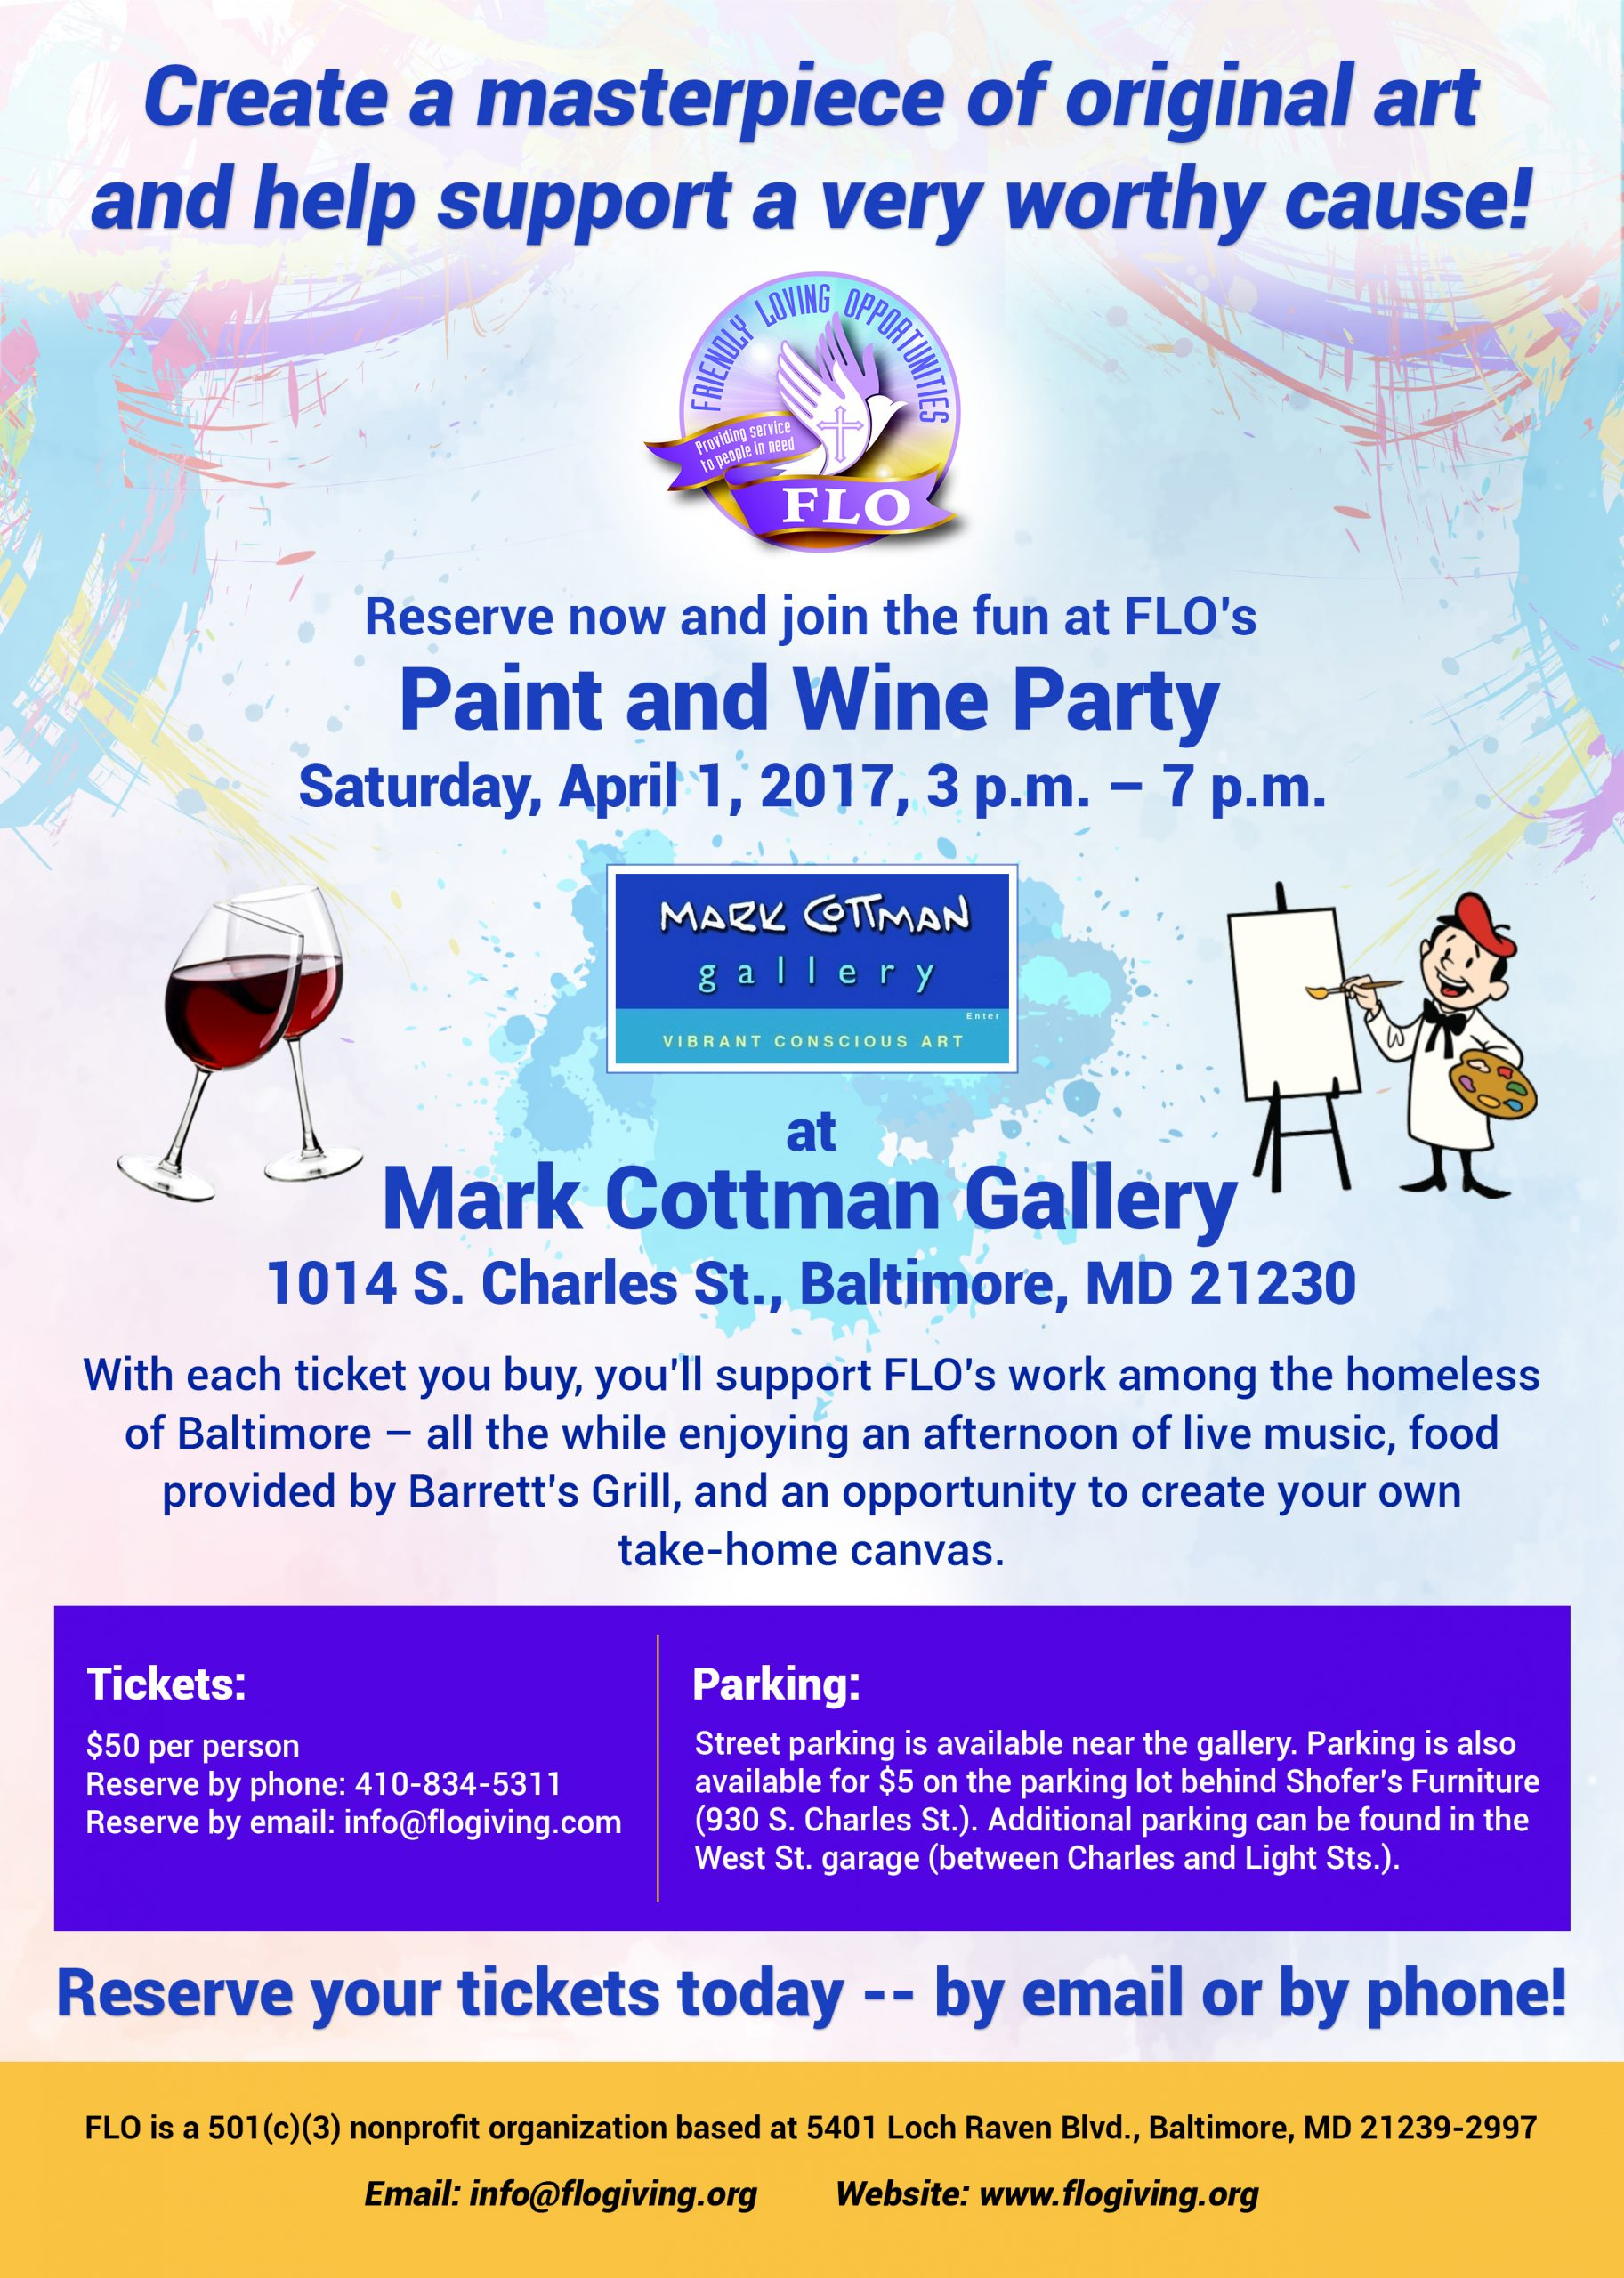 FLO-Paint-Wine-Flyer